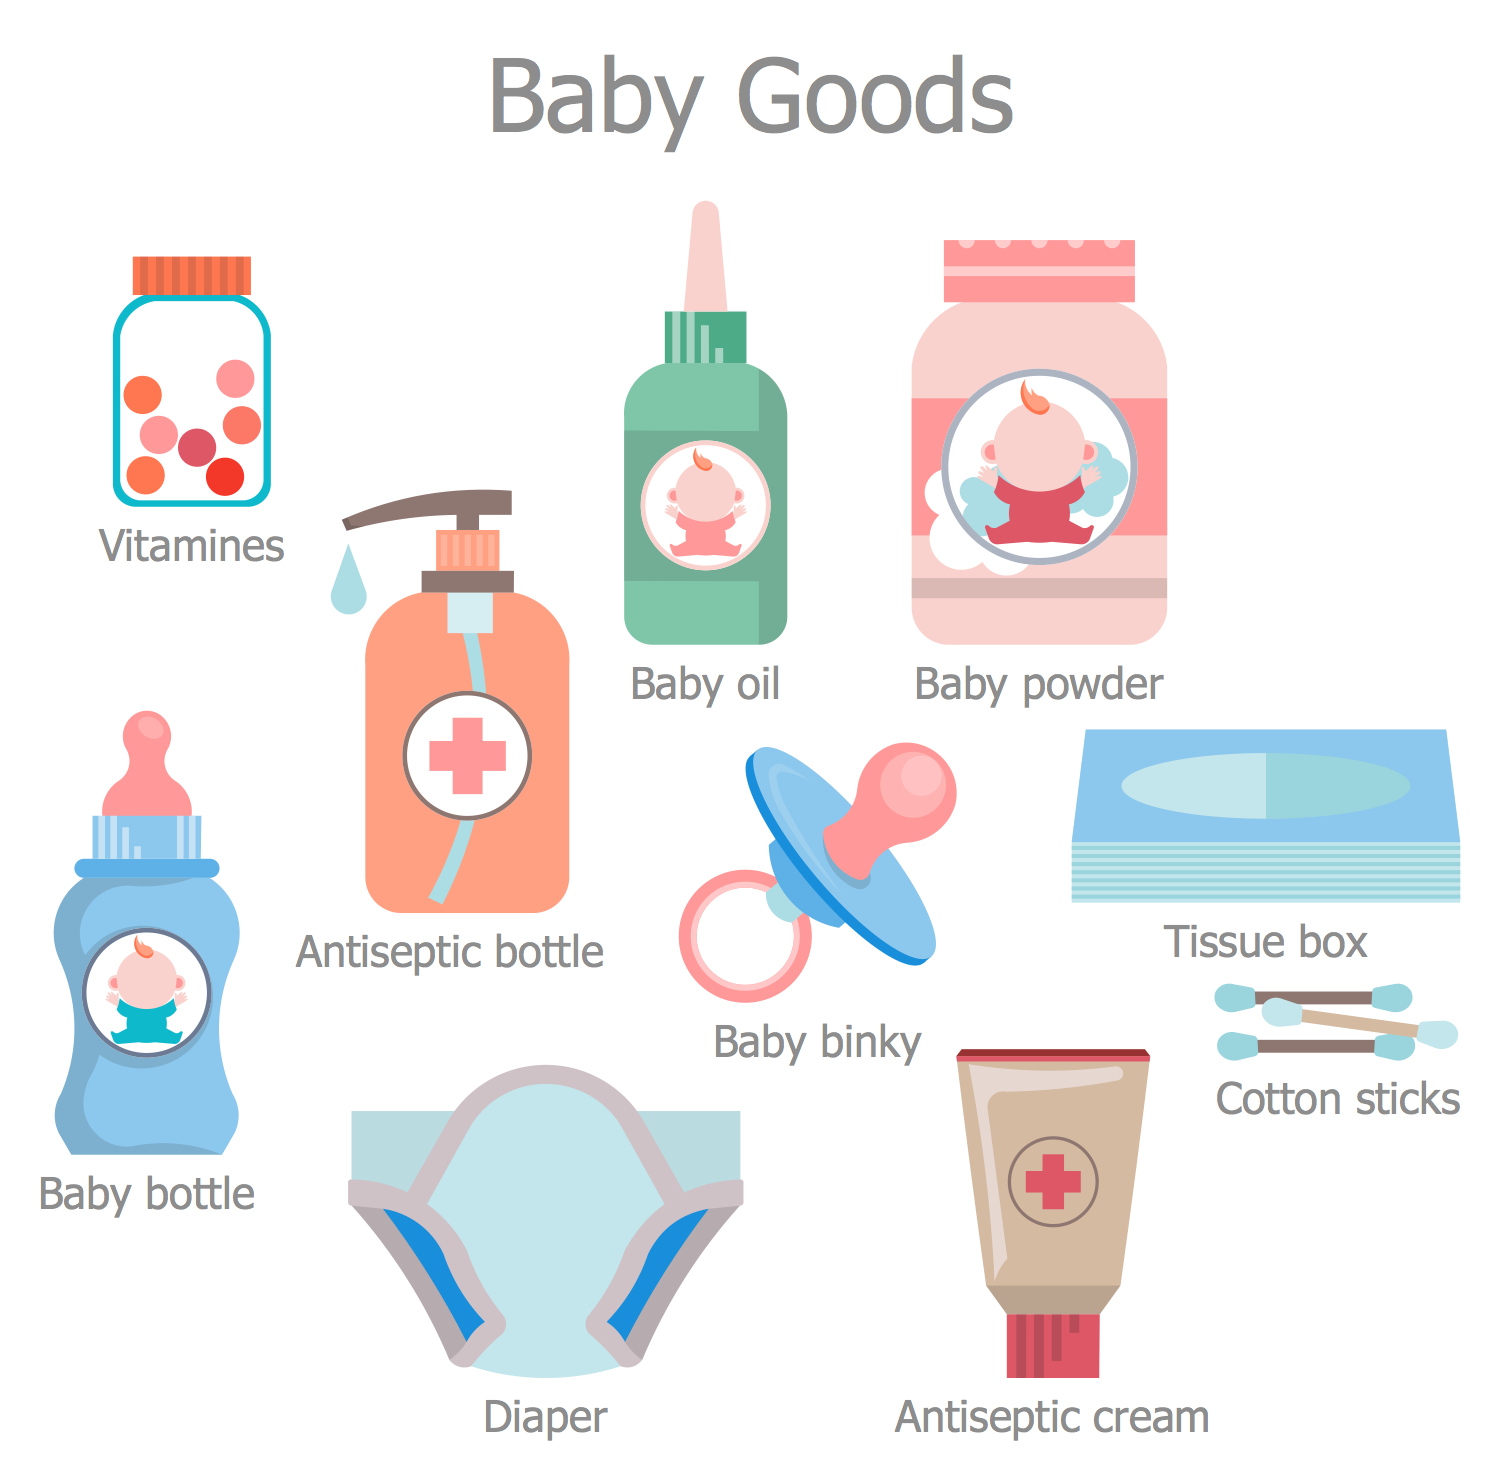 Pharmacy Illustrations - Baby Goods